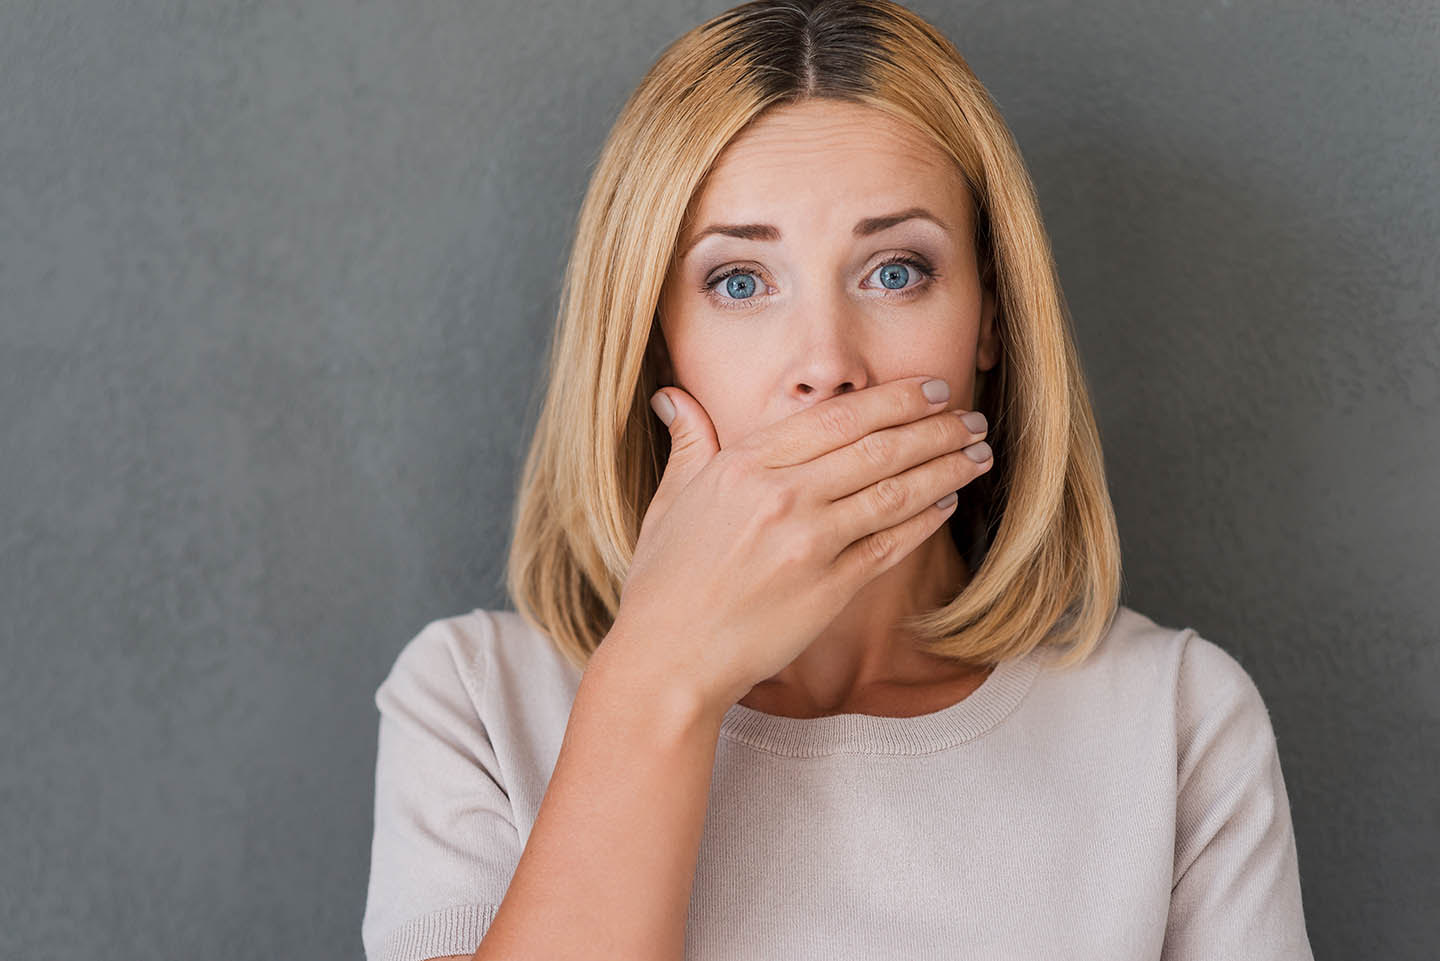 woman covering mouth looking nervous